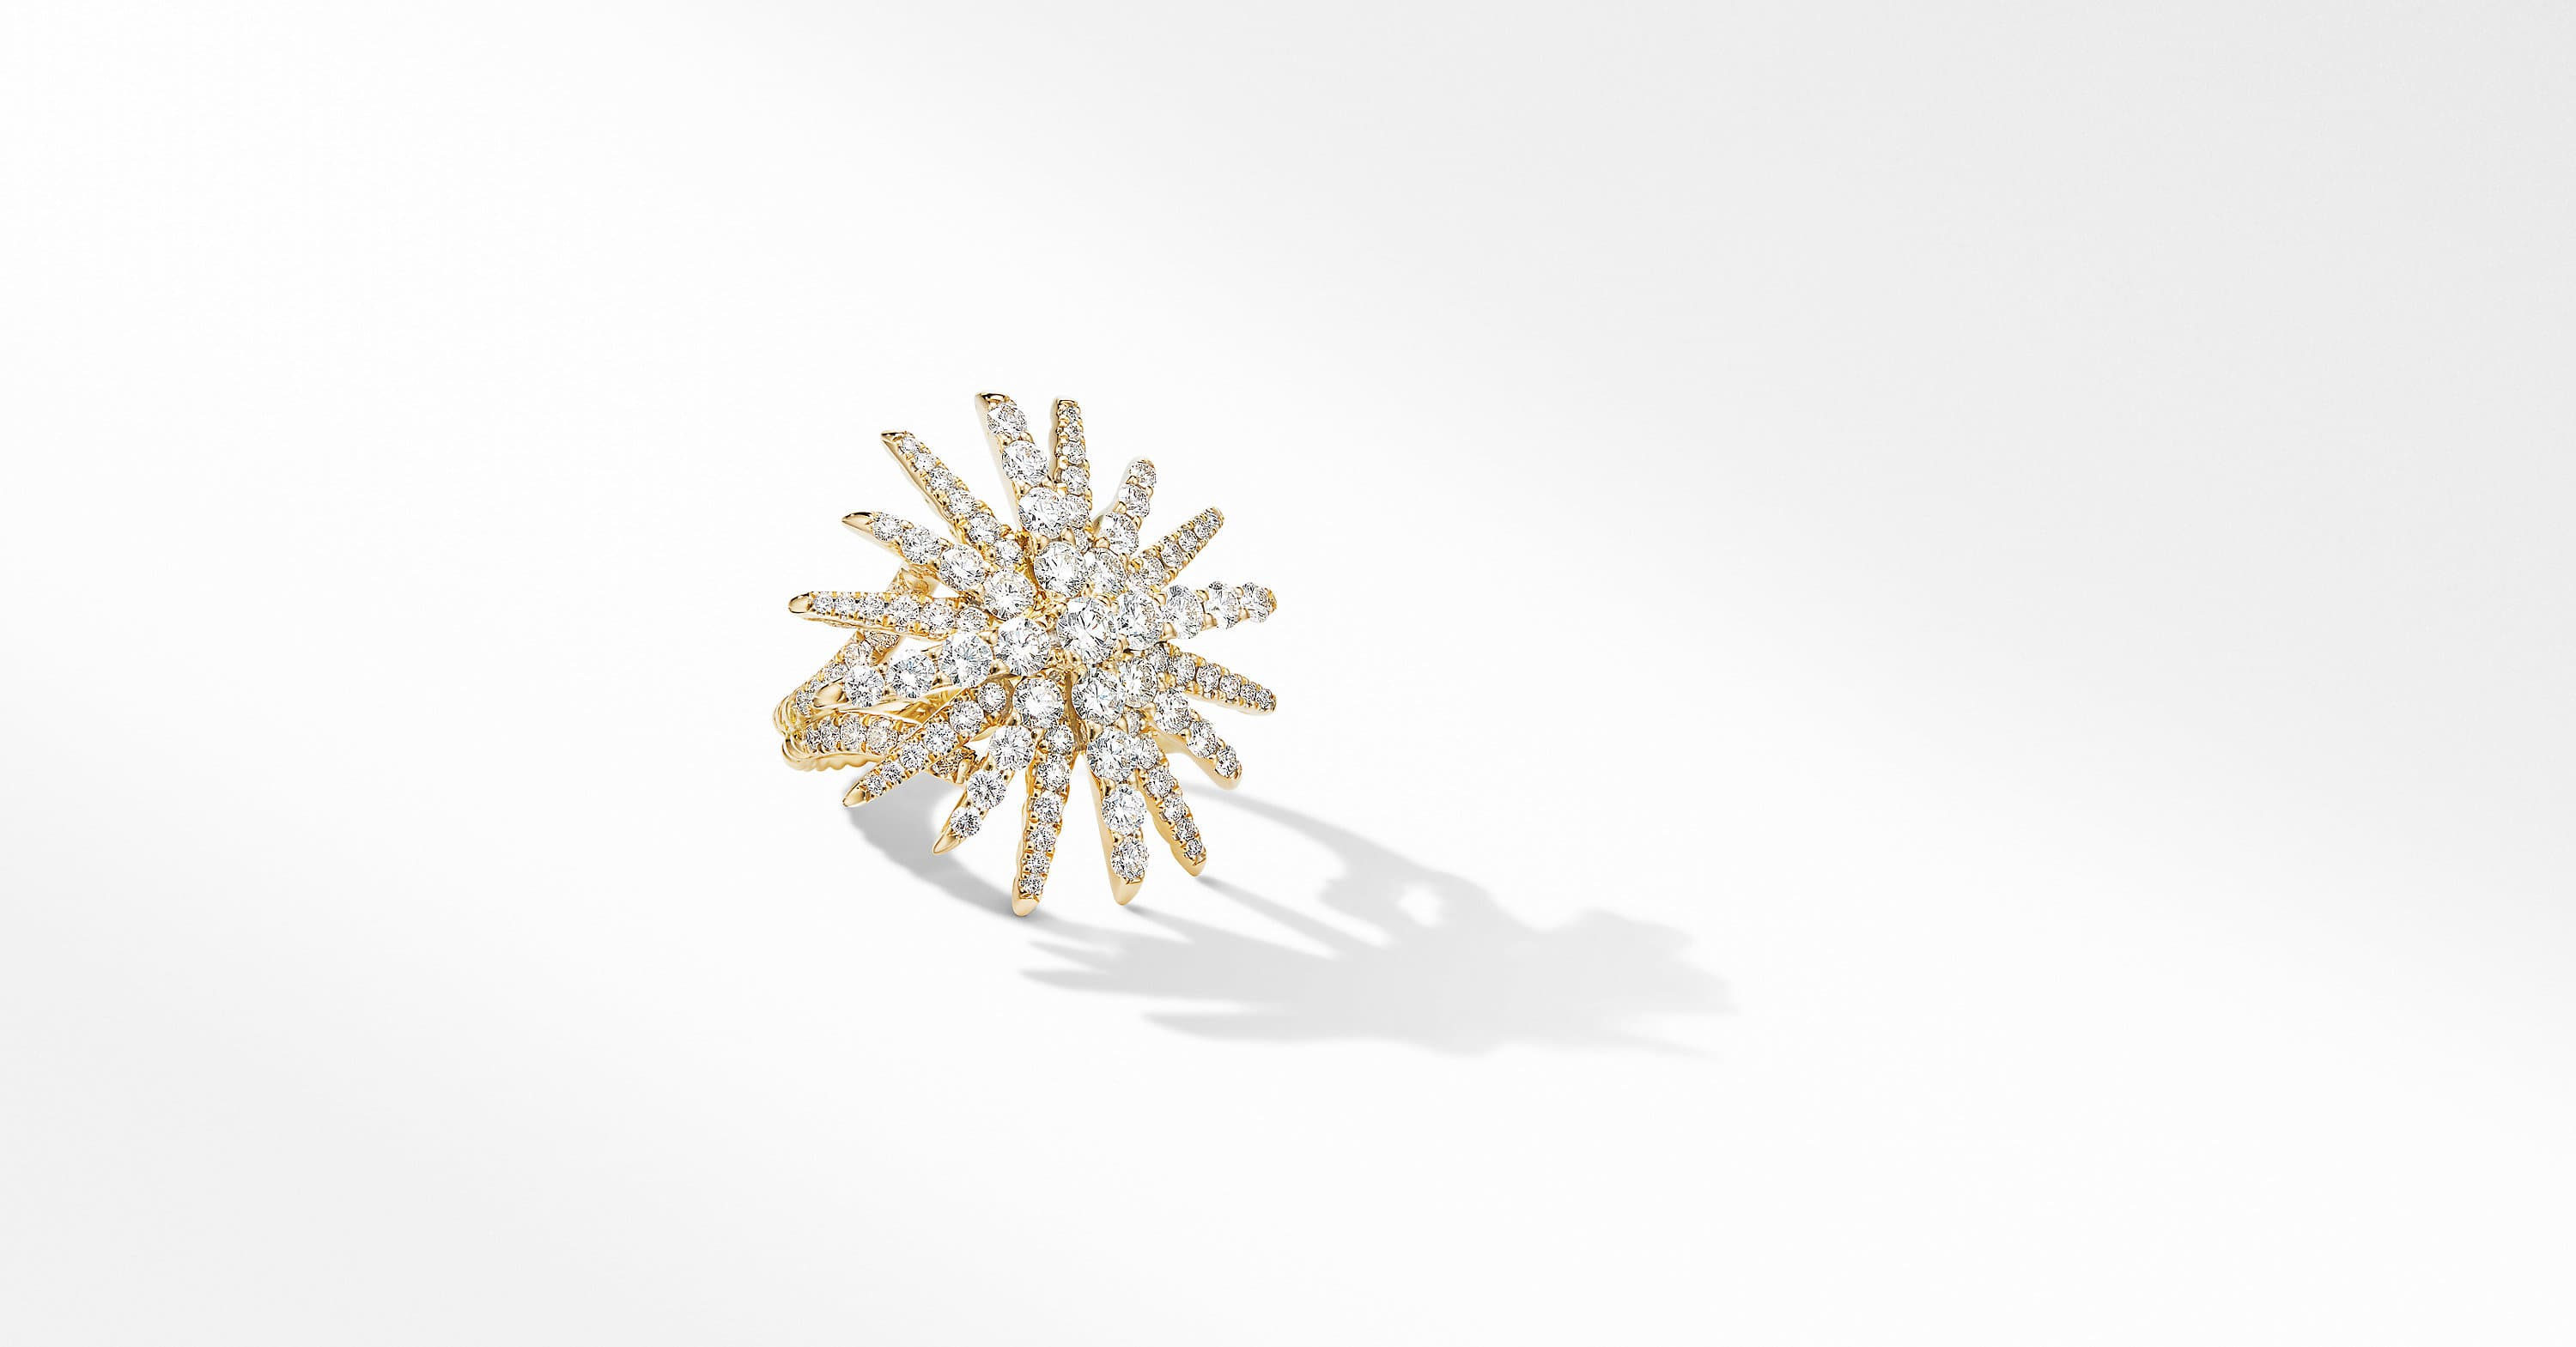 Starburst Statement Ring in 18K Yellow Gold with Pavé